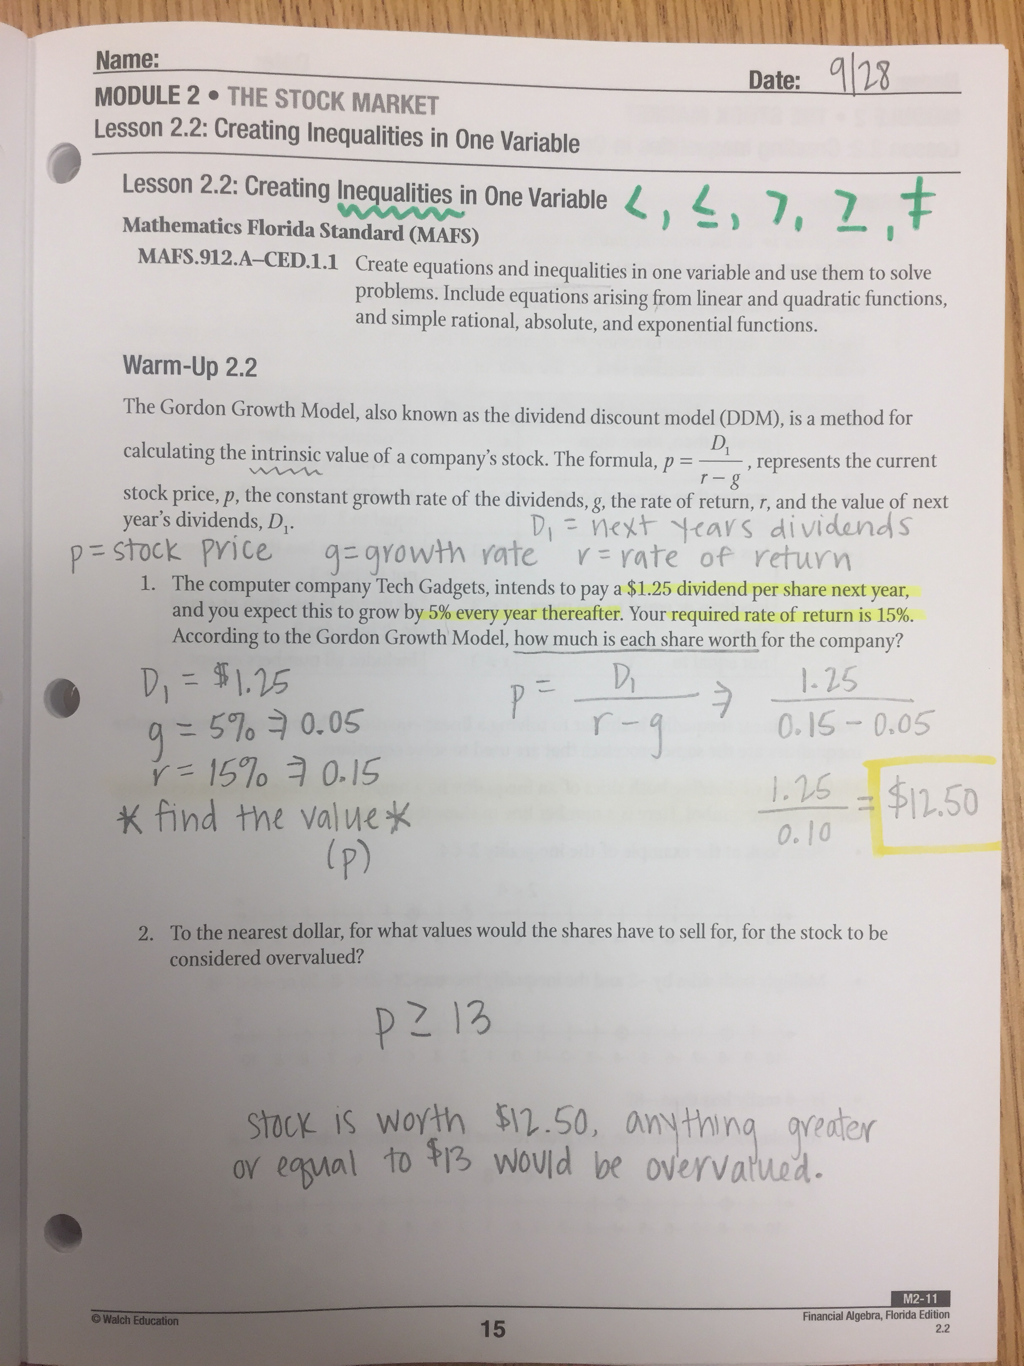 Category: Financial Algebra - AHS Math